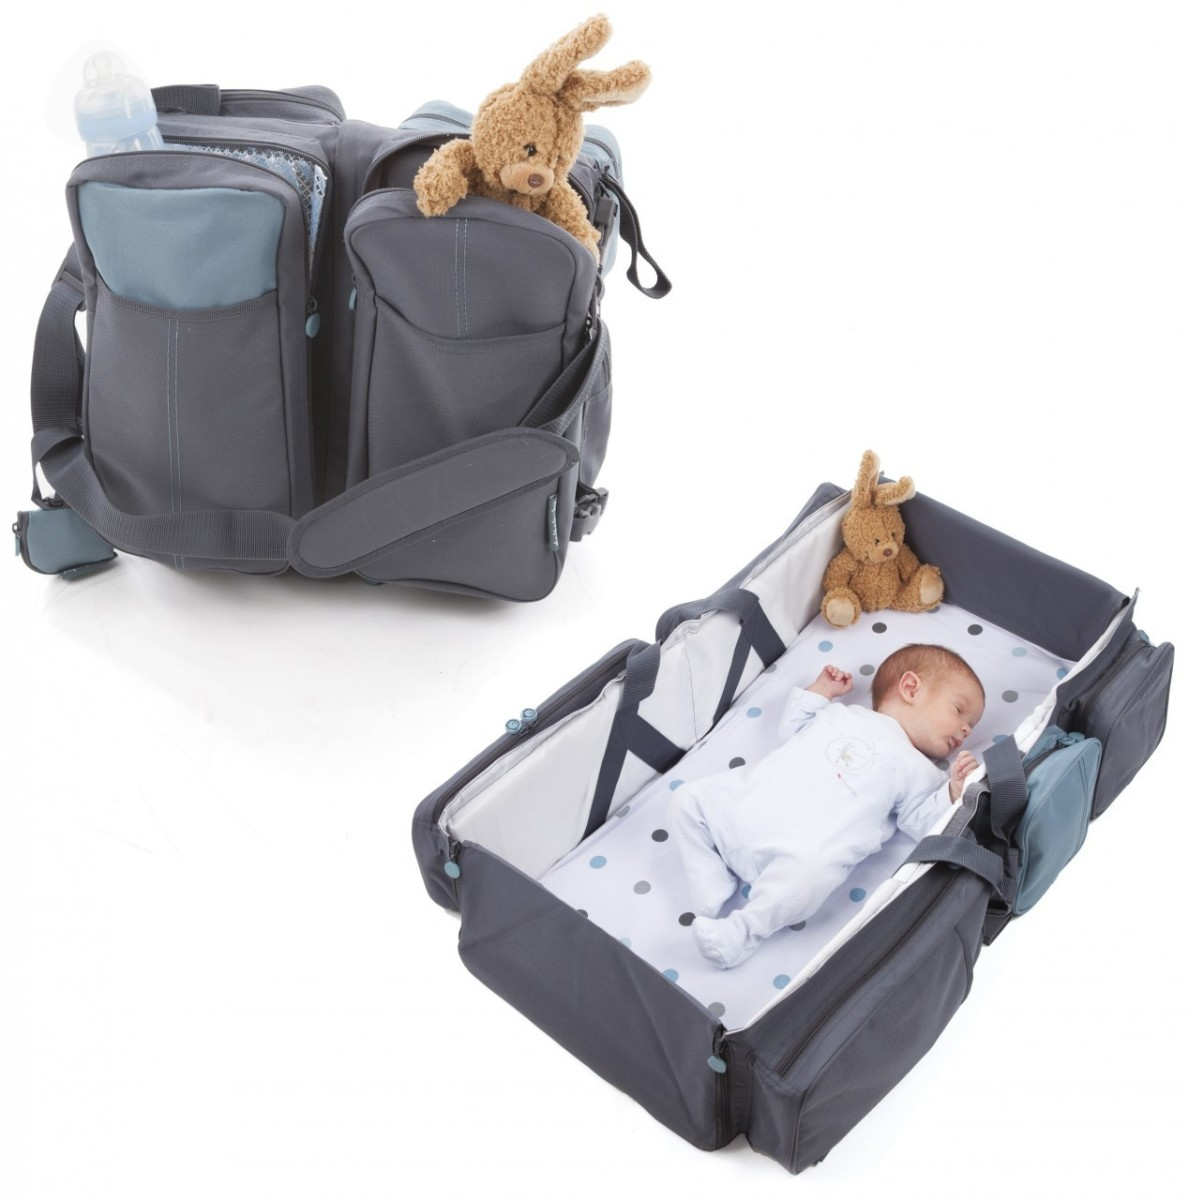 This clever diaper bag also doubles as a diaper changing pad and a portable baby bed.